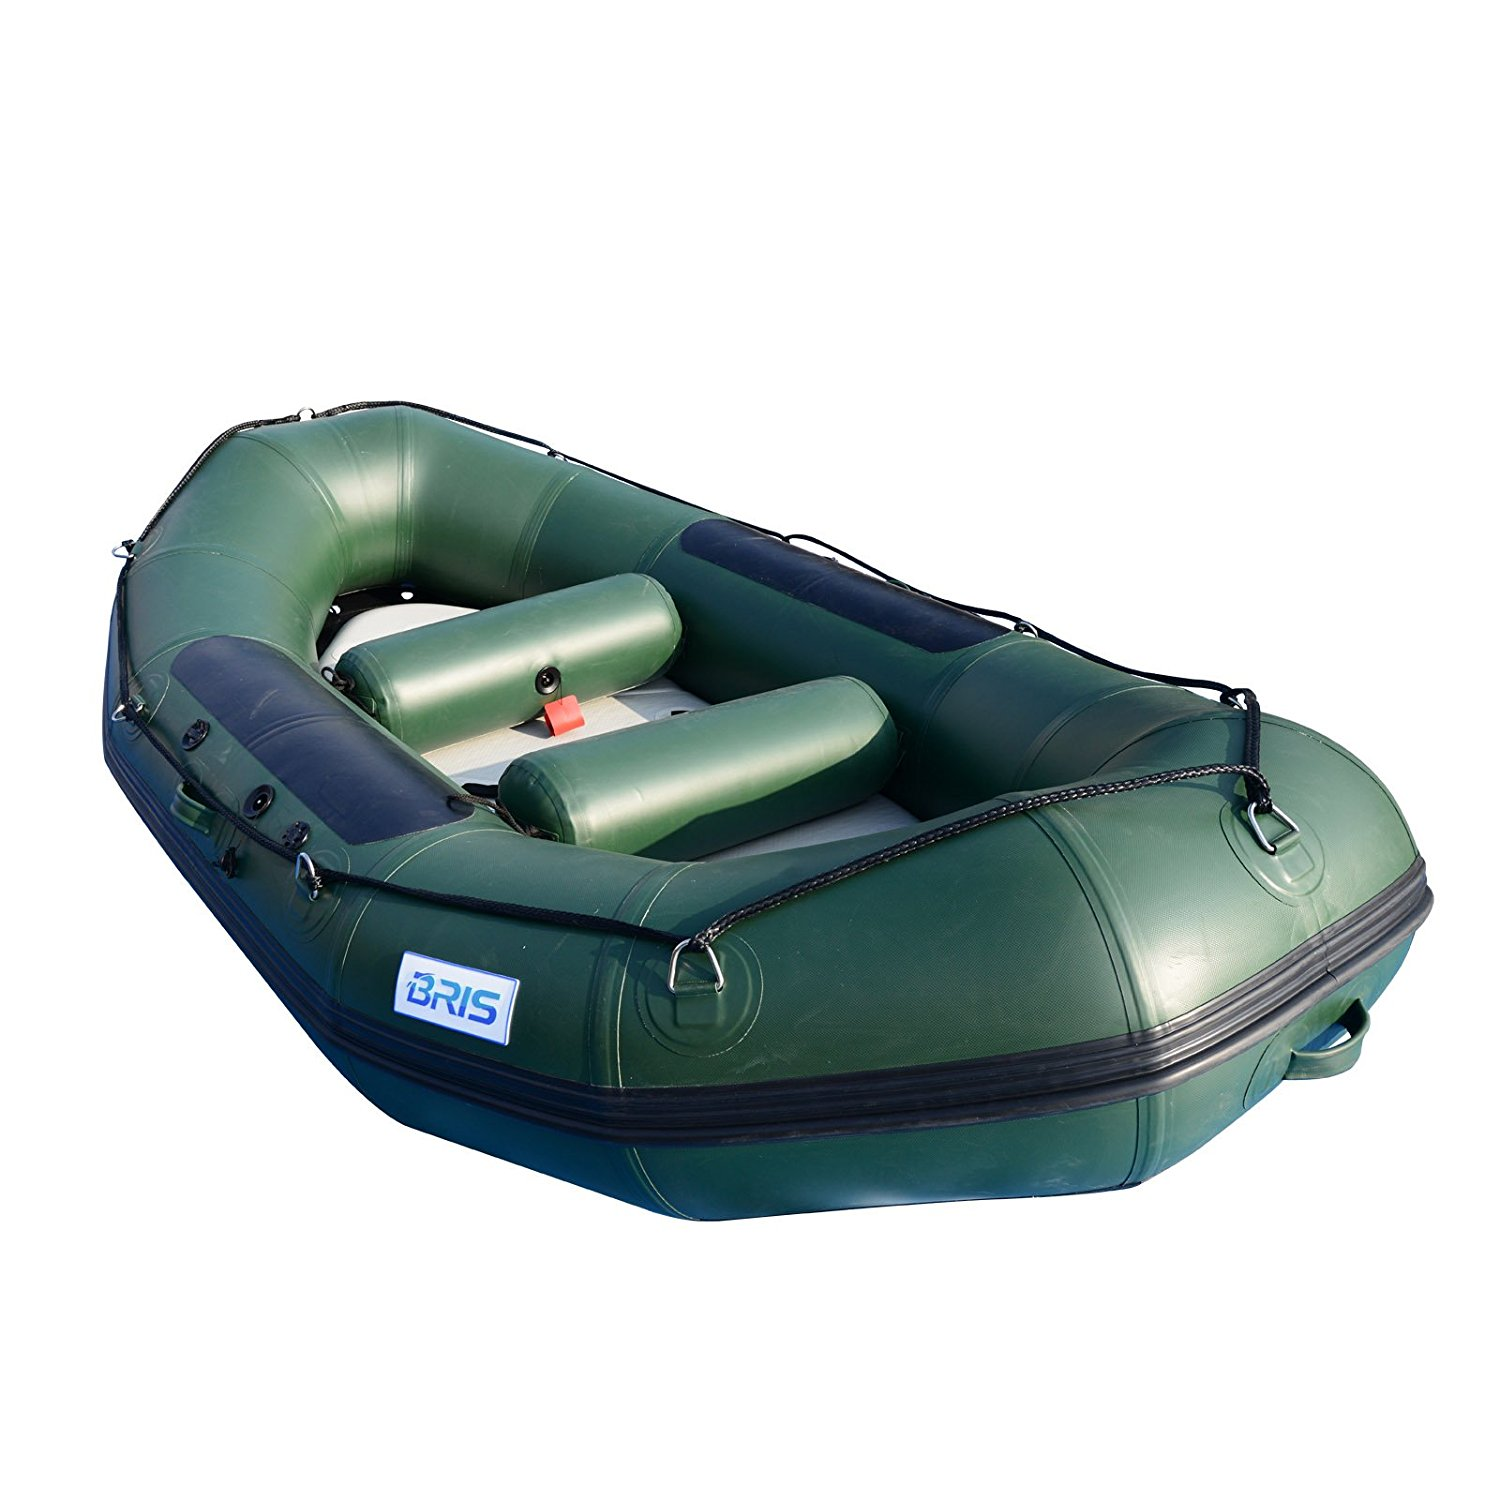 BRIS 9.8Ft Inflatable White Water River Raft Inflatable Boat Floating Tube